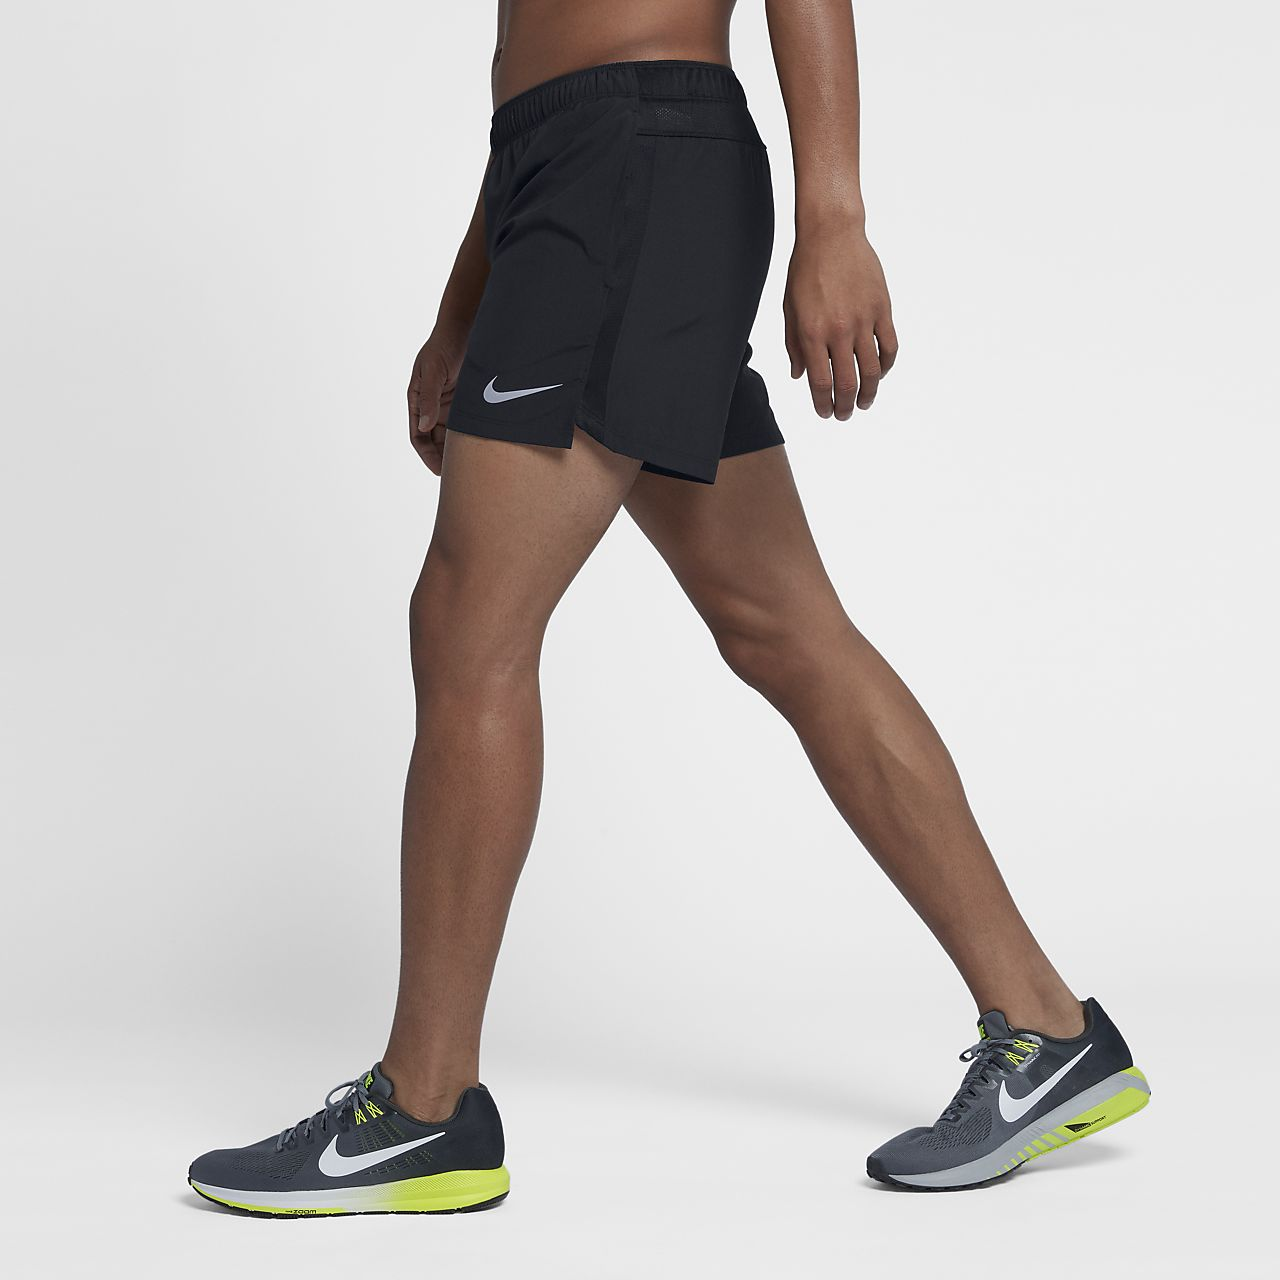 "Nike Challenger Men's 5"" (12.5cm approx.) Lined Running Shorts"